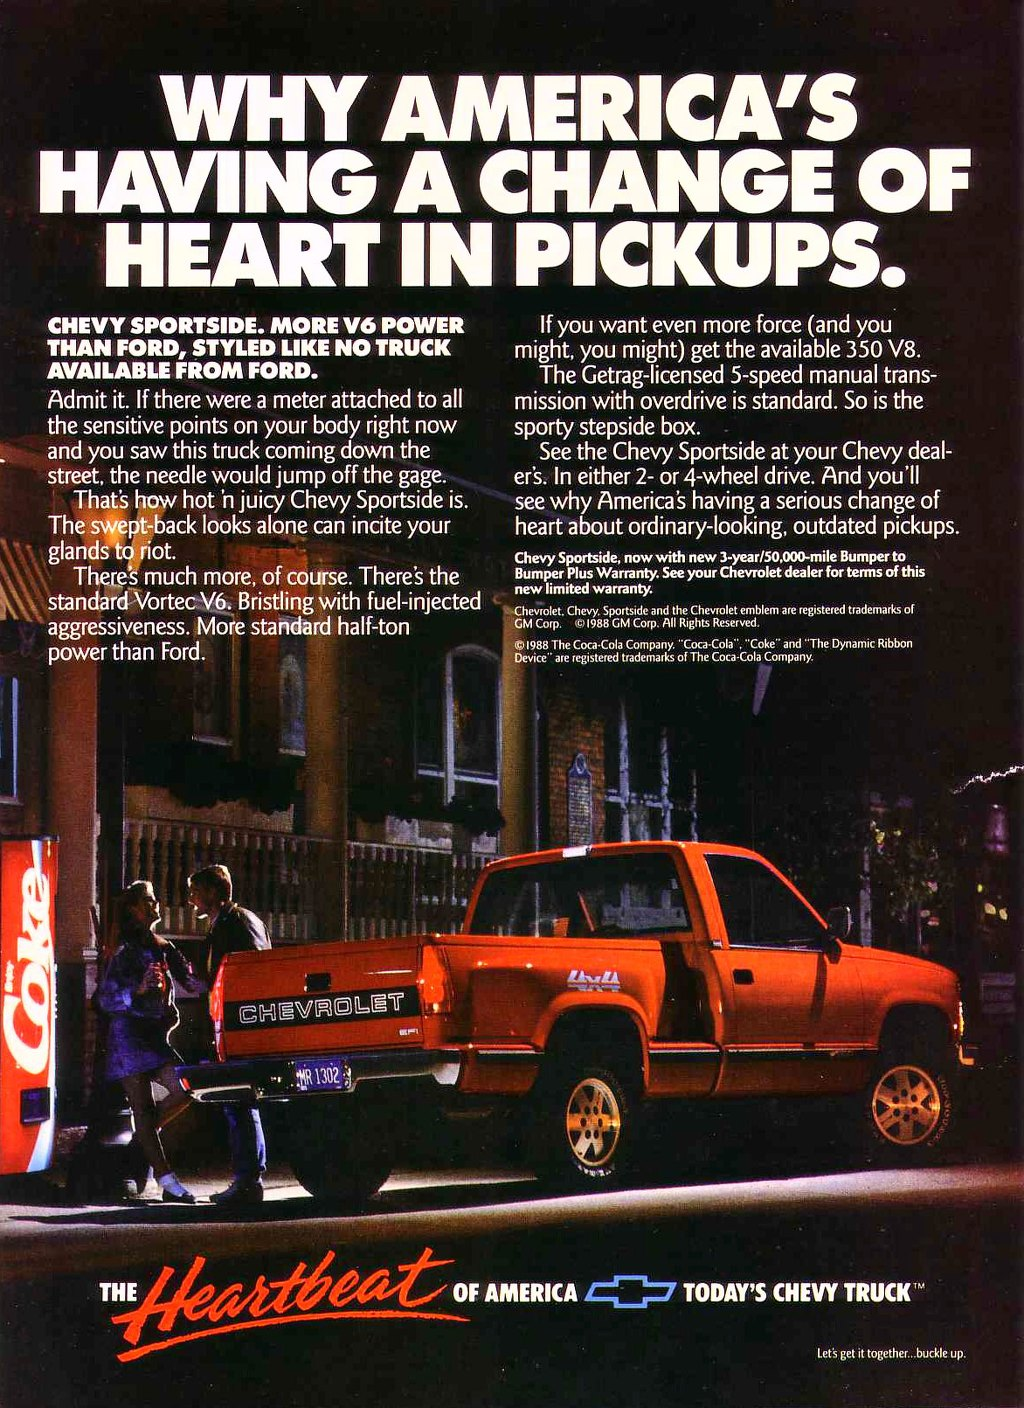 WHY AMERICA'S HAVING A CHANGE OF HEART IN PICKUPS.  CHEVY SPORTSIDE. MORE V6 POWER THAN FORD, STYLED LIKE NO TRUCK AVAILABLE FROM FORD. Admit it. If there were a meter attached to all the sensitive points on your body right now and you saw this truck coming down the street, the needle would jump off the gage. That's how hot 'n juicy Chevy Sportside is. The swept-back looks alone can incite your \ I\N, glands There's rmio. ut 'smuch more, of course. There's the standard Vortec V6. Bristling with fuel-injected aggressiveness. More standard half-ton power than Ford.   ; - I  14148.471   If you want even more force (and you might, you might) get the available 350 V8. The Getrag-licensed 5-speed manual trans-mission with overdrive is standard. So is the sporty stepside box. See the Chevy Sportside at your Chevy deal-er's. In either 2- or 4-wheel drive. And you'll see why America's having a serious change of heart about ordinary-looking, outdated pickups. Chevy Sportside, now with new 3-year/50,000-mile Bumper to Bumper Plus Warranty. See your Chevrolet dealer for terms of this new limited warranty. Chevrolet. Chevy. Sportside and the Chevrolet emblem are registered trademarks of GM Corp. ,e,1988 GM Corp. All Rights Reserved. (01988 The Coca-Cola Company. ''Coca-Cola''. 'Coke and ''The Dynamic Ribbon Device are registered trademarks of The Coca-Cola Company.  r.   THEAL* f,y)-/ ele;',404-1.,f OF AMERICA ig=.7 TODAY'S CHEVY TRUCK'''  Let's get it together...buckle up.